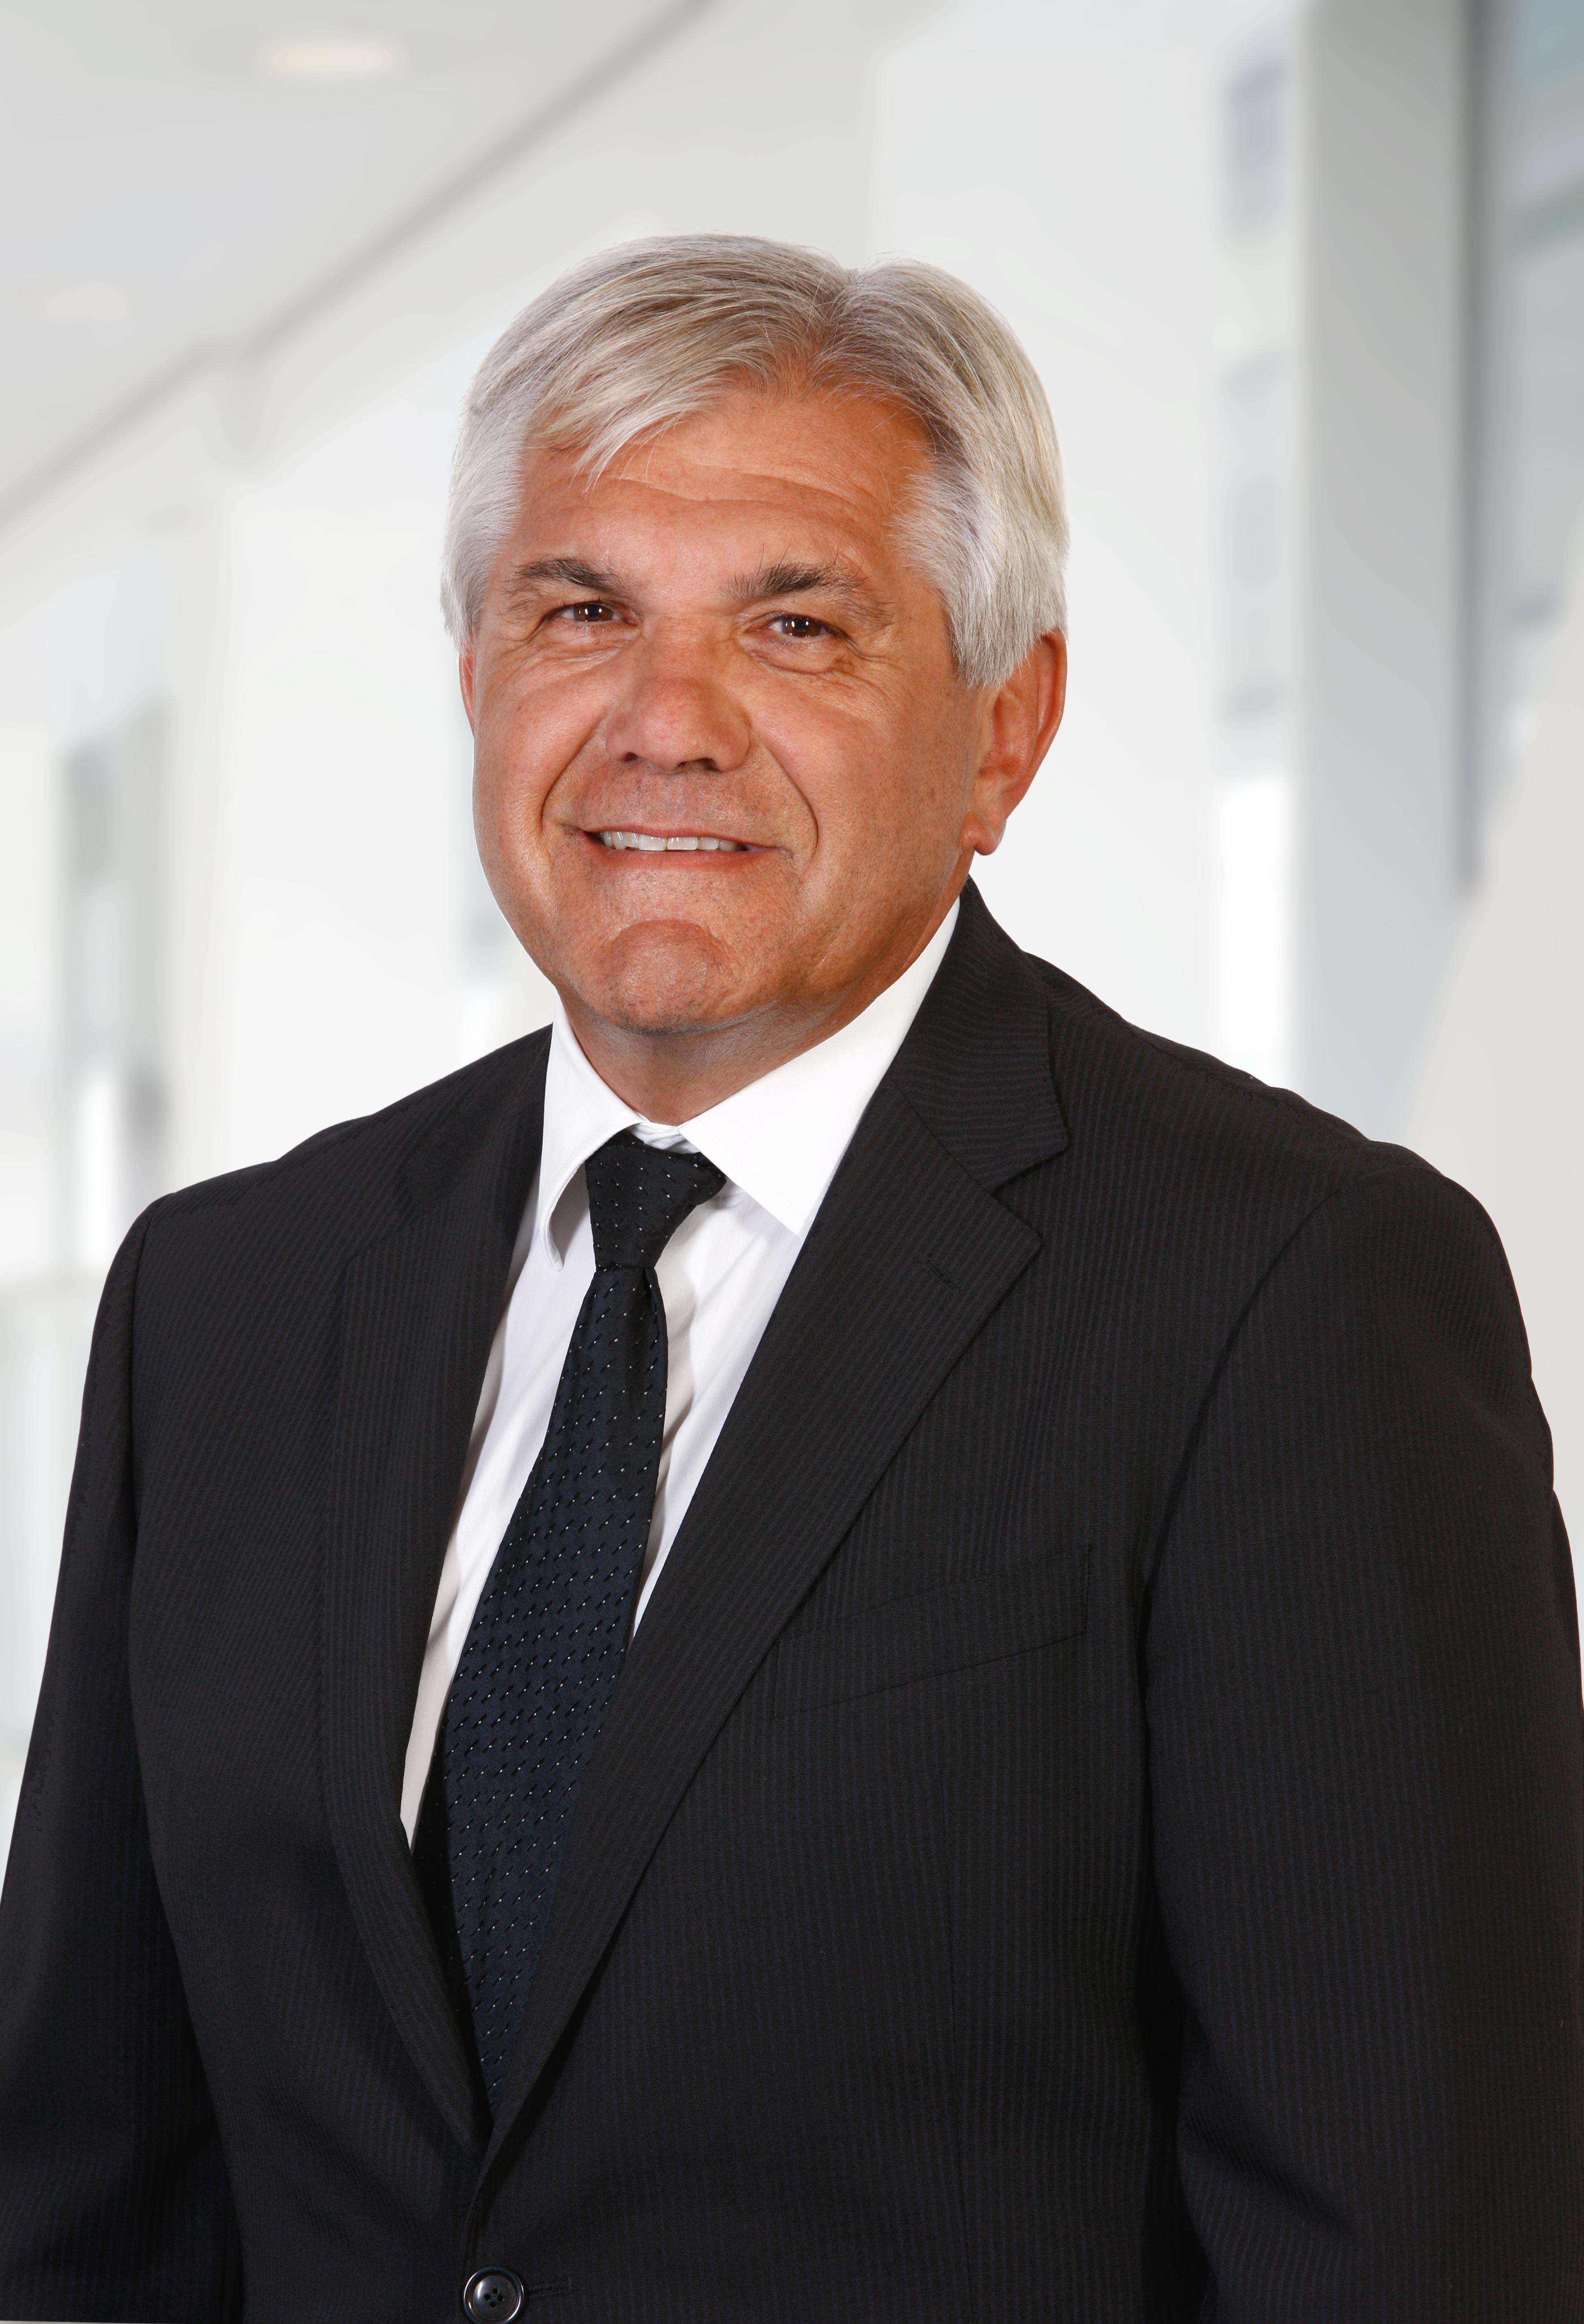 Günter Hauptmann will be Chairman of NORMA Group's Supervisory Board.